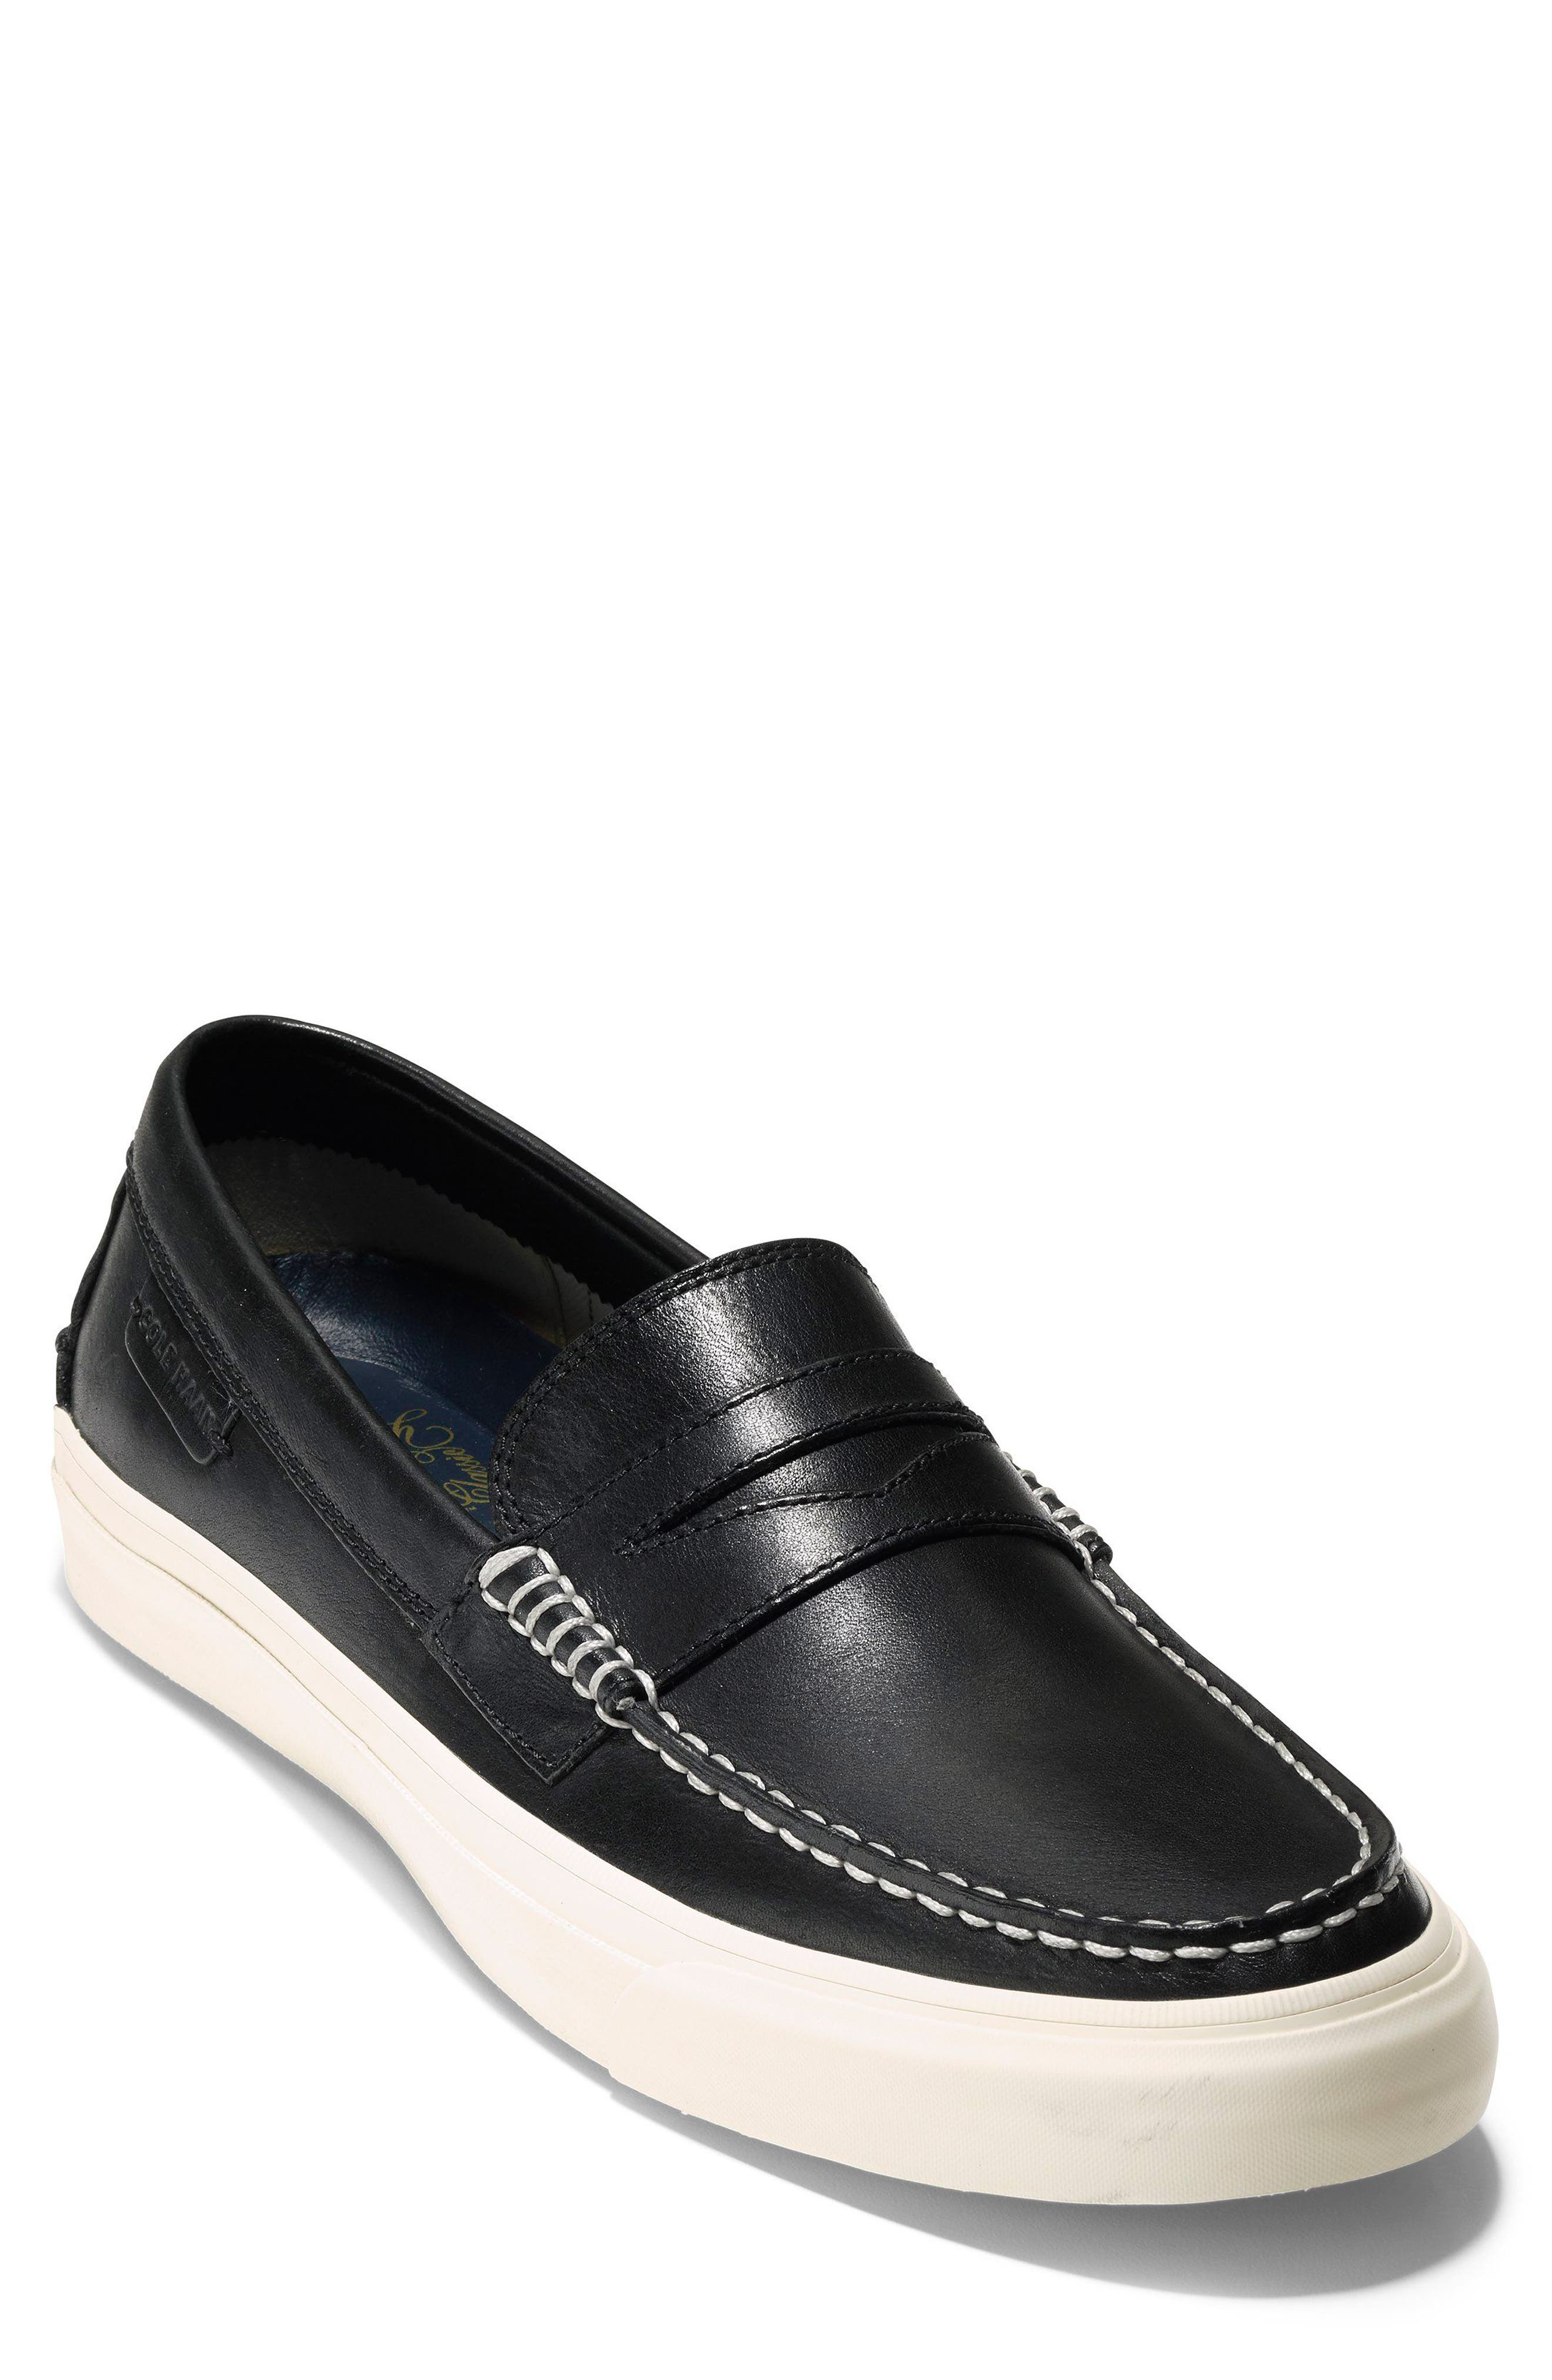 Pinch Weekend LX Penny Loafer,                             Main thumbnail 1, color,                             Black/ White